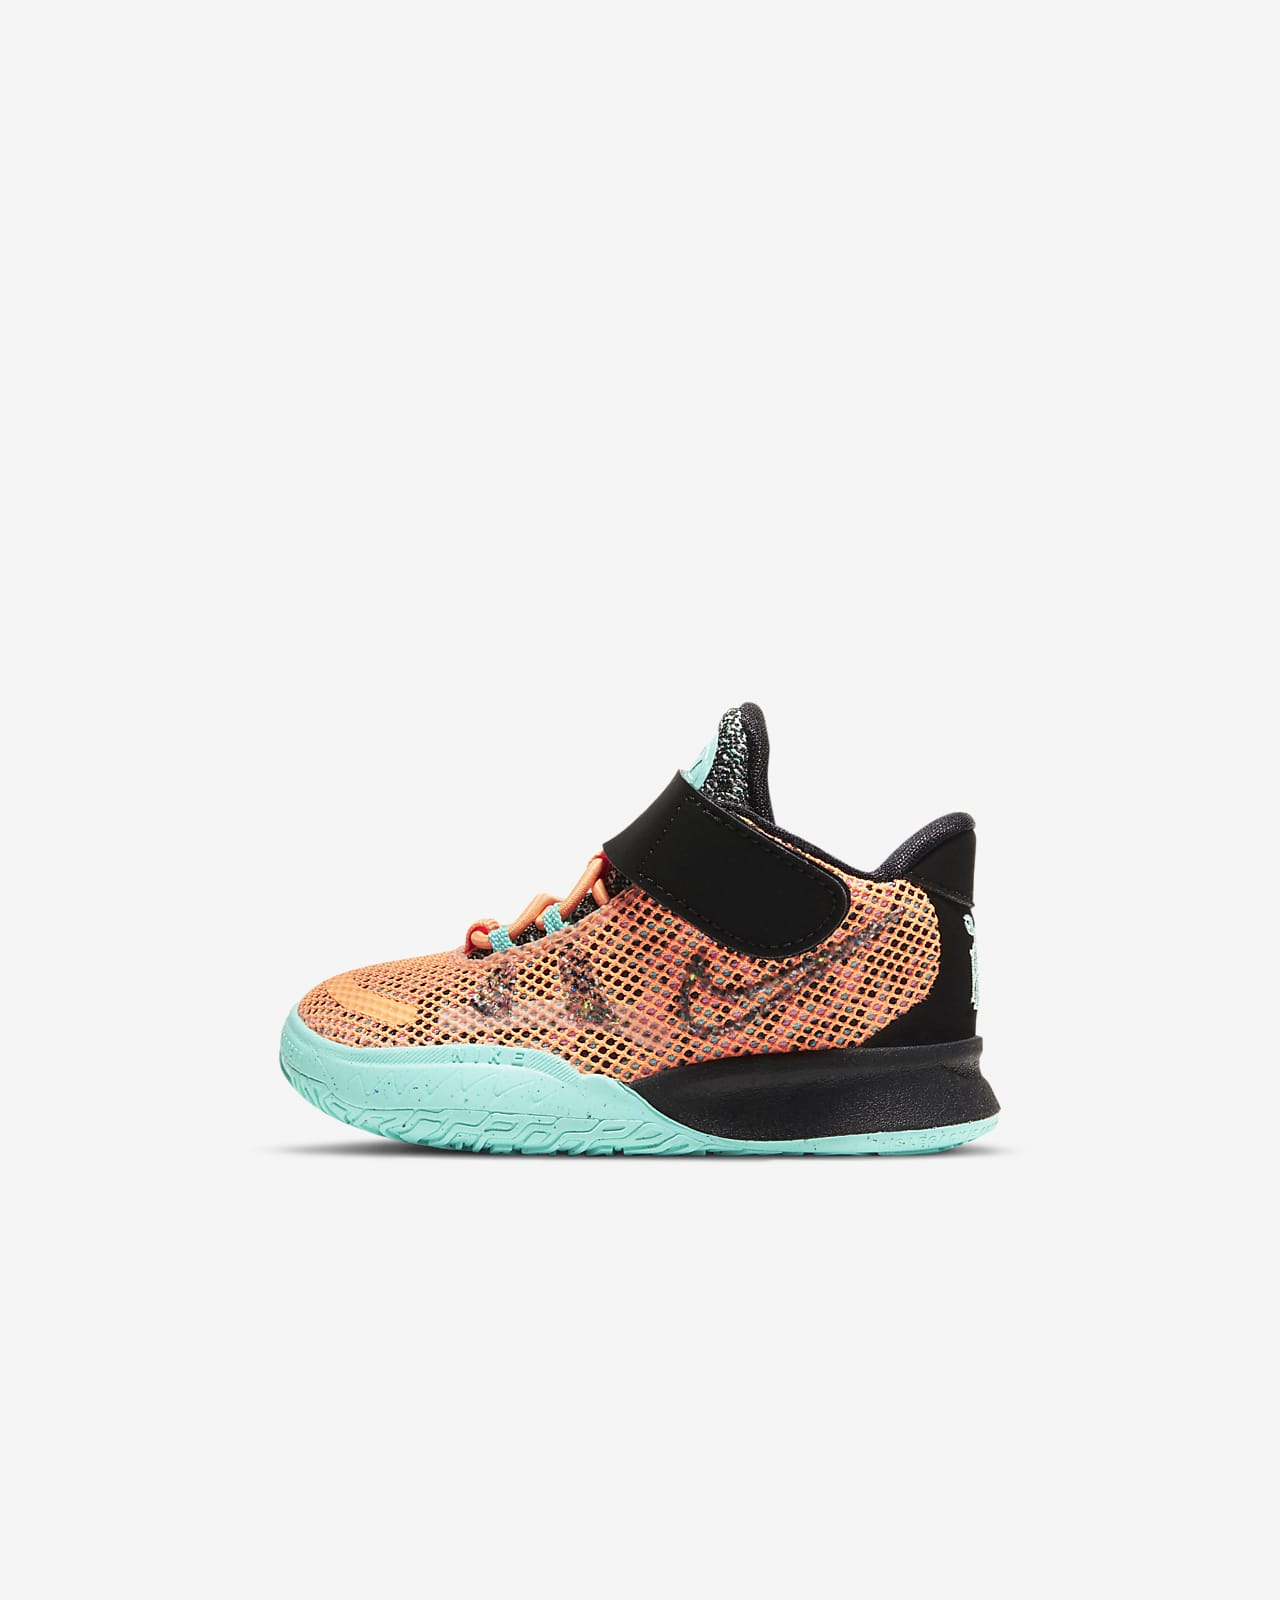 Kyrie 7 ASW Baby/Toddler Shoe